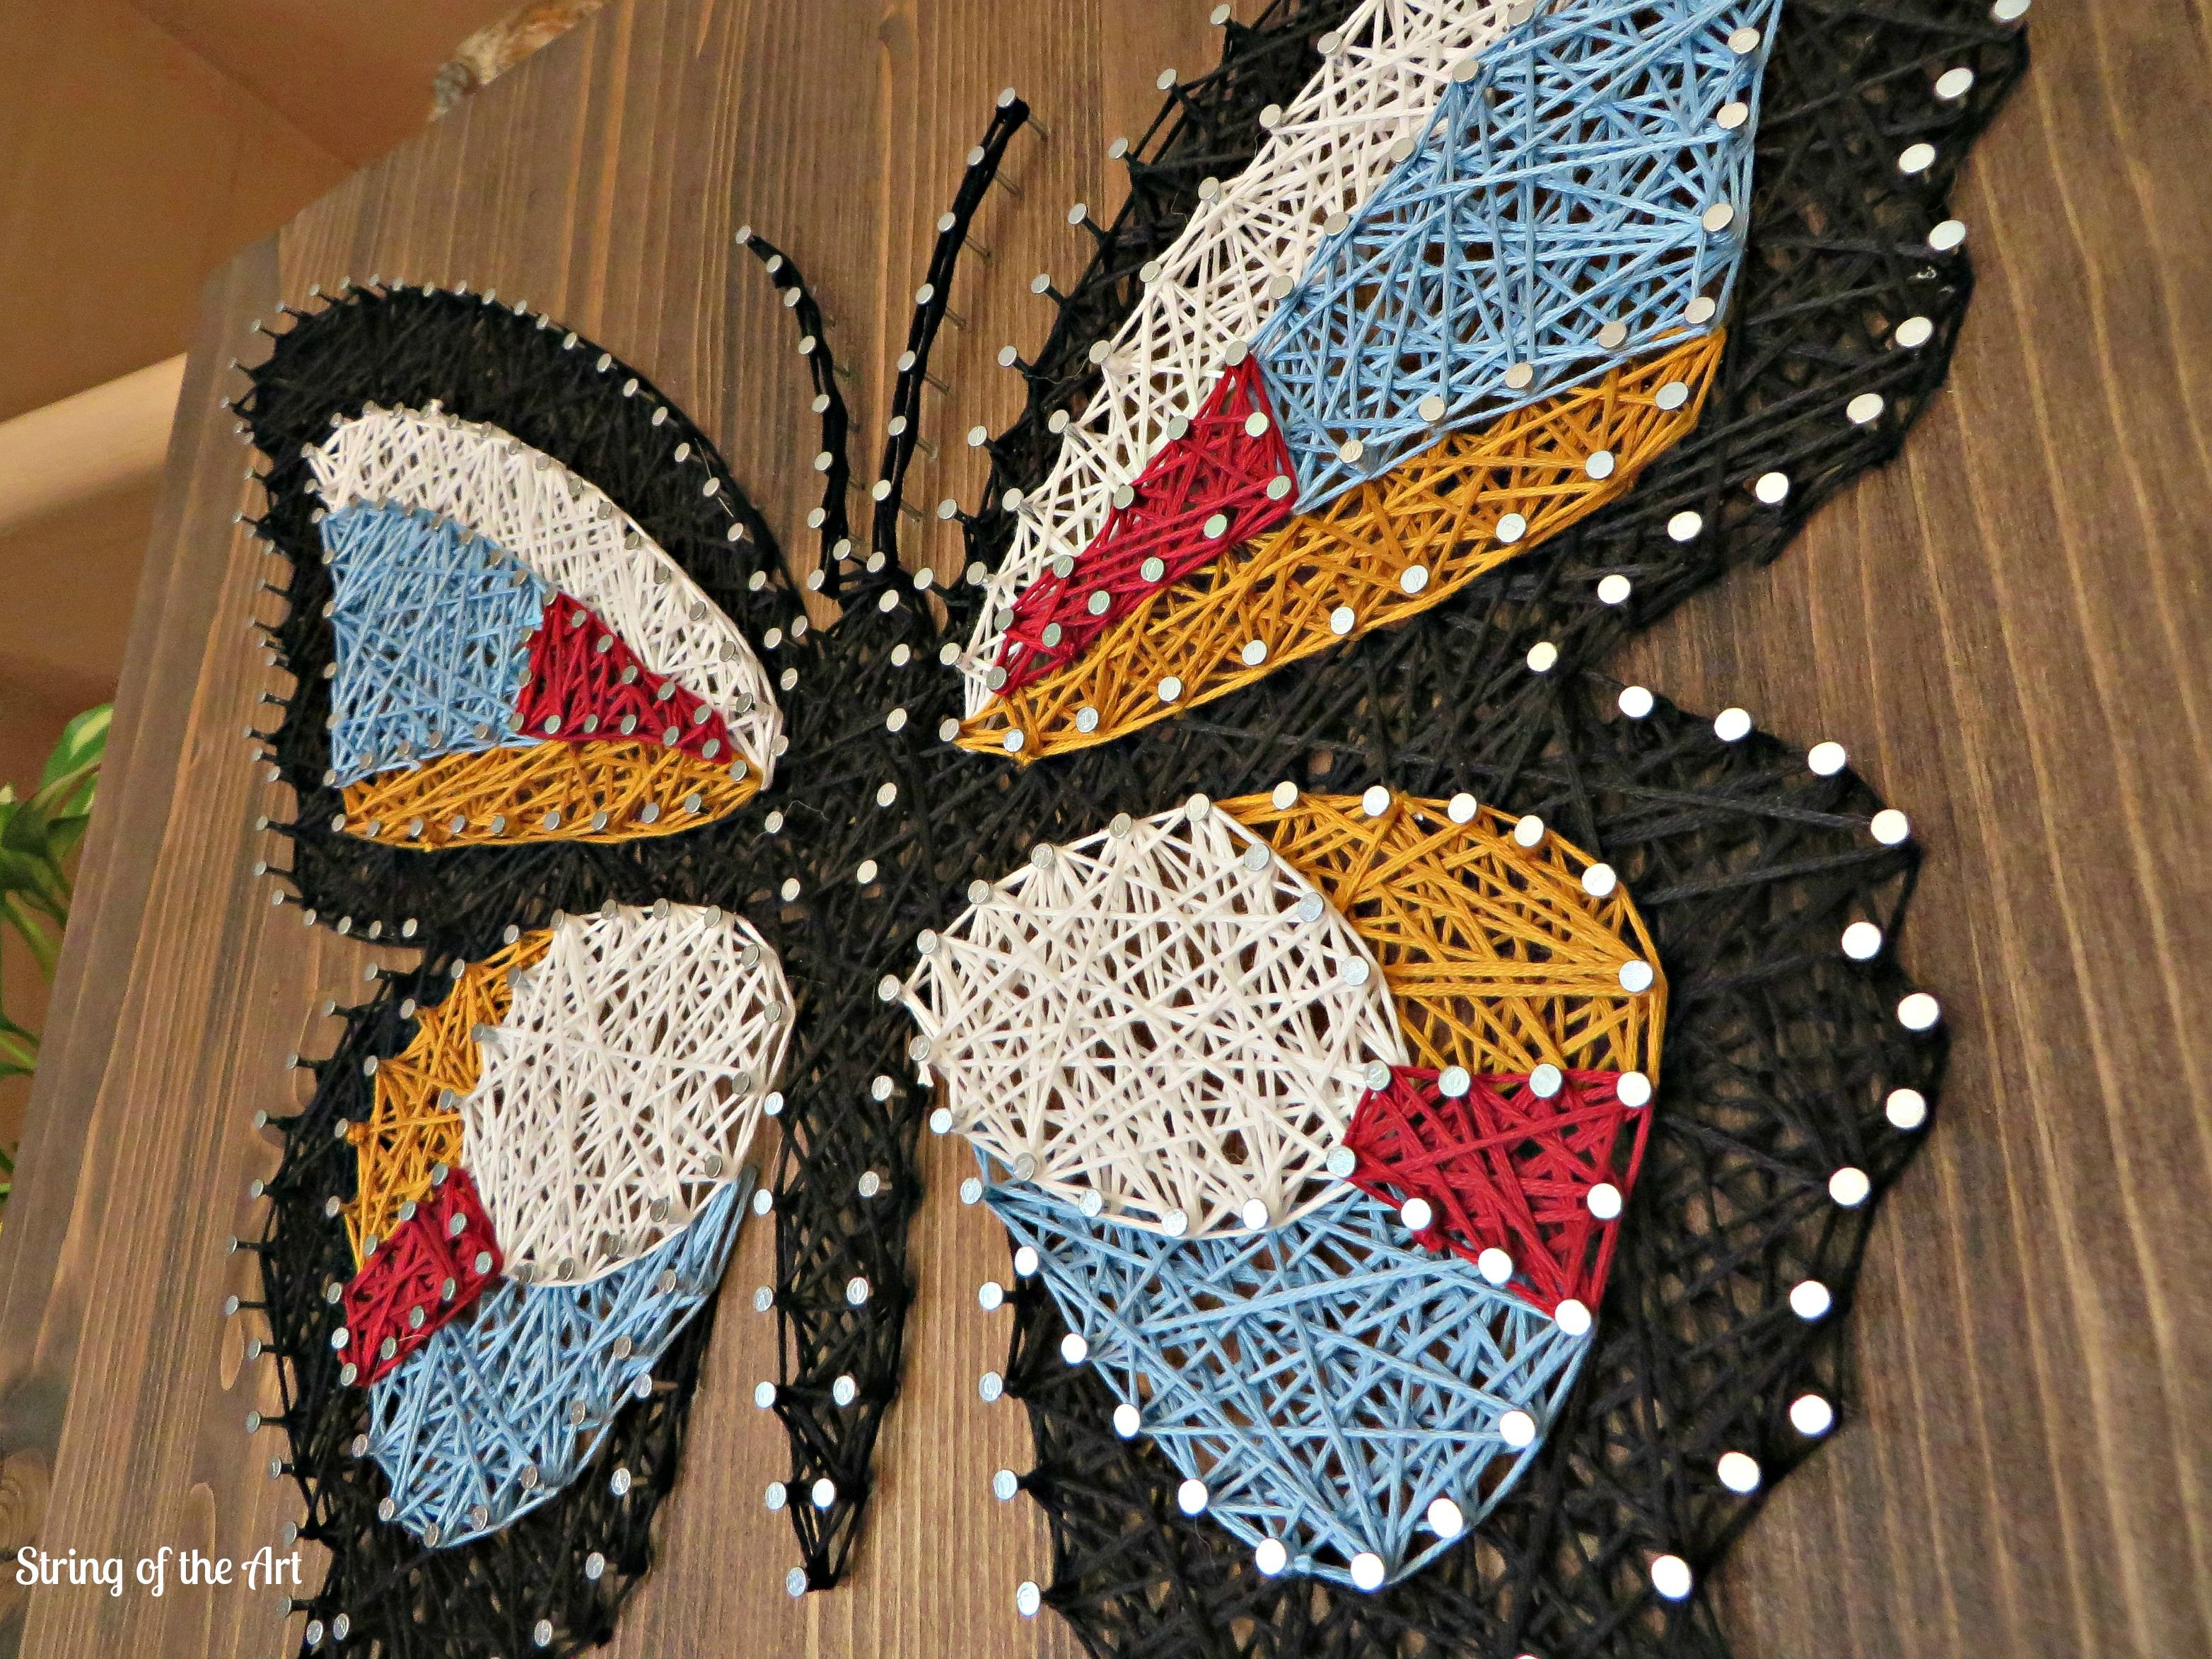 String art craft kit - String Art Diy Crafts Kit Save 10 Off The Purchase Price Of This Butterfly